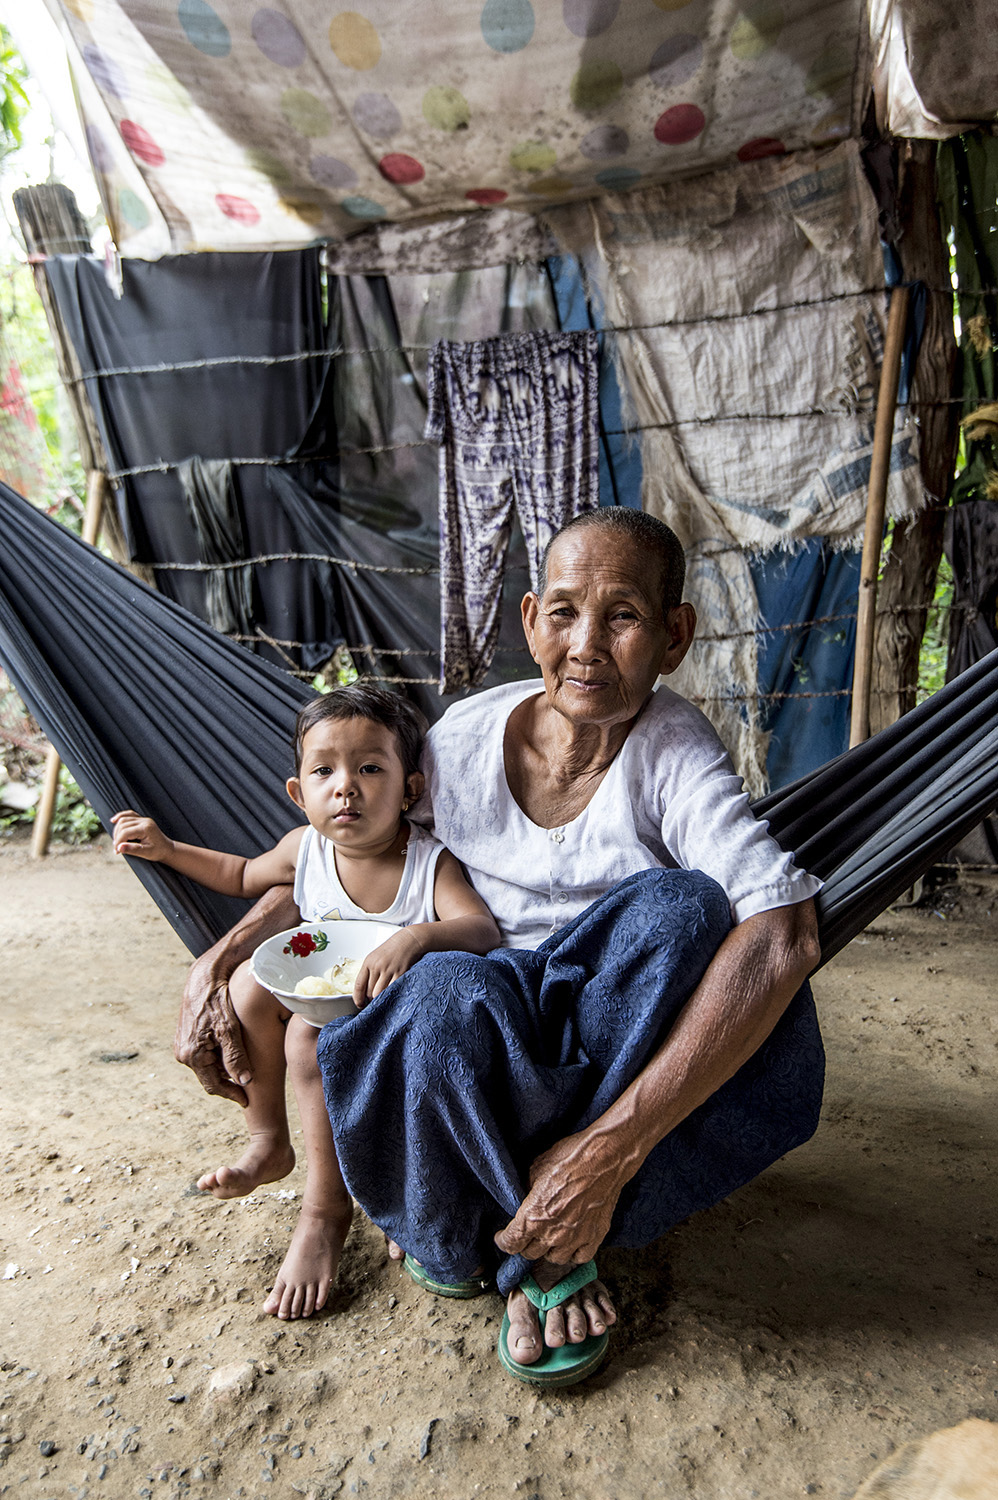 image of AARONTAIT COPYRIGHTED 2014 313 TRAVEL PHOTOGRAPHER ASIA REPORTAGE EDITORIAL STORY HUMANS LIFE EARTH TRAVELER EXPLORE CULTURE PEOPLE COUNTRY NATIONALITY DOCUMENTARY CAMBODIA VILLAGERS FAMILY ELDER